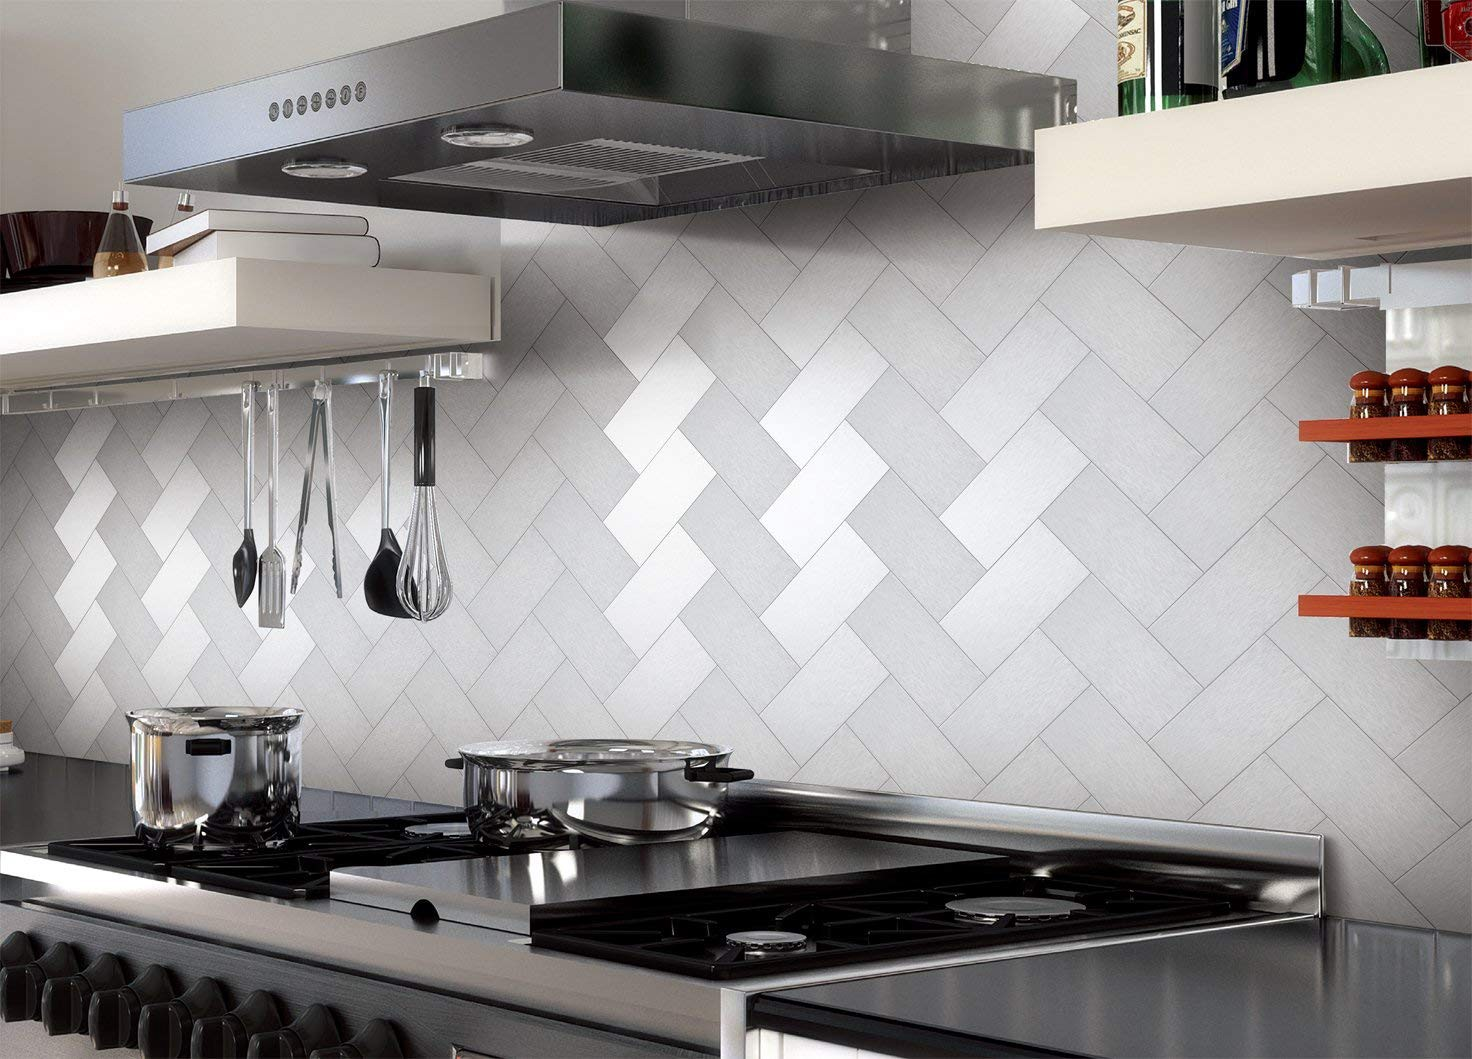 Stainless Steel Backsplashes Pros And Cons By Accord Steel Medium